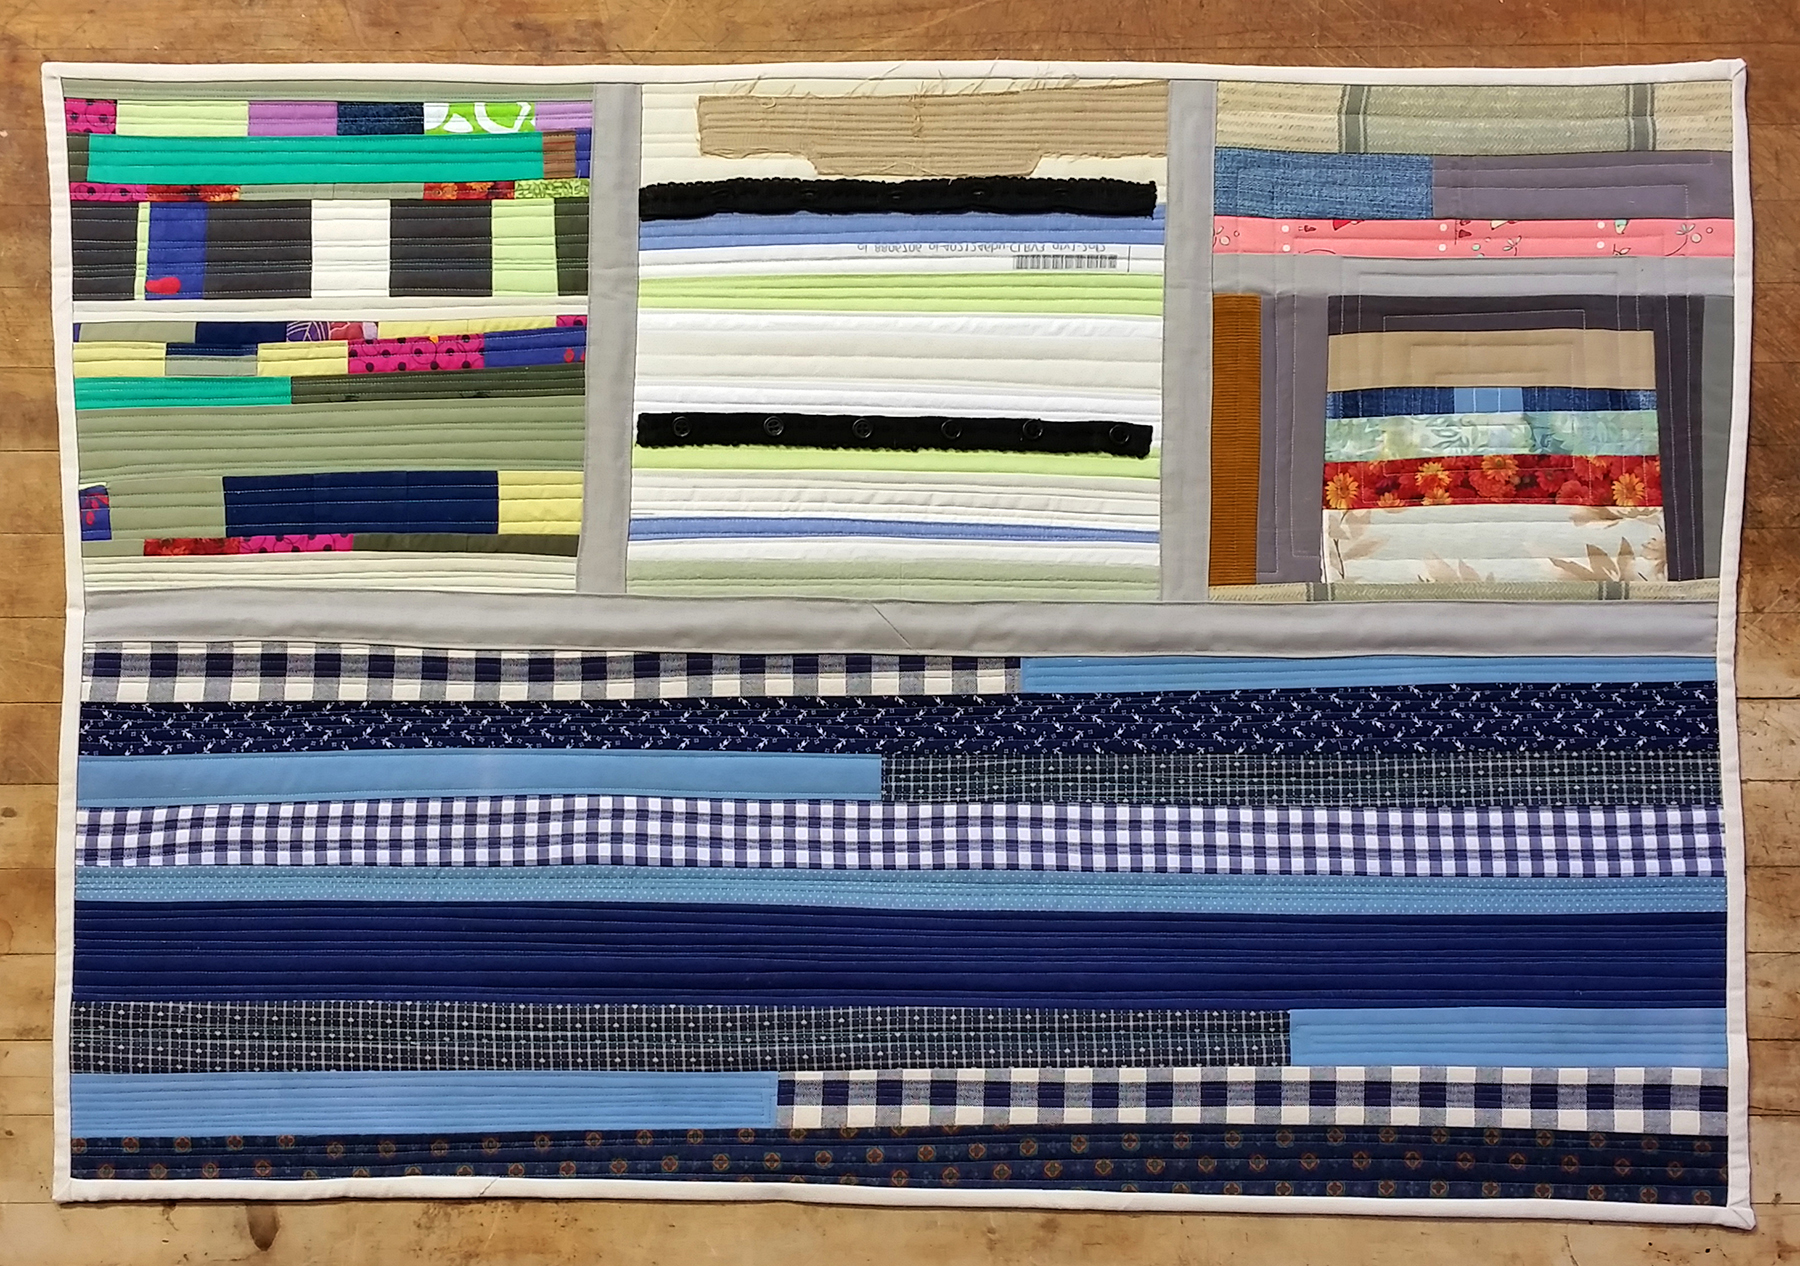 Atlee Quilt Diary 201701 hires.jpg